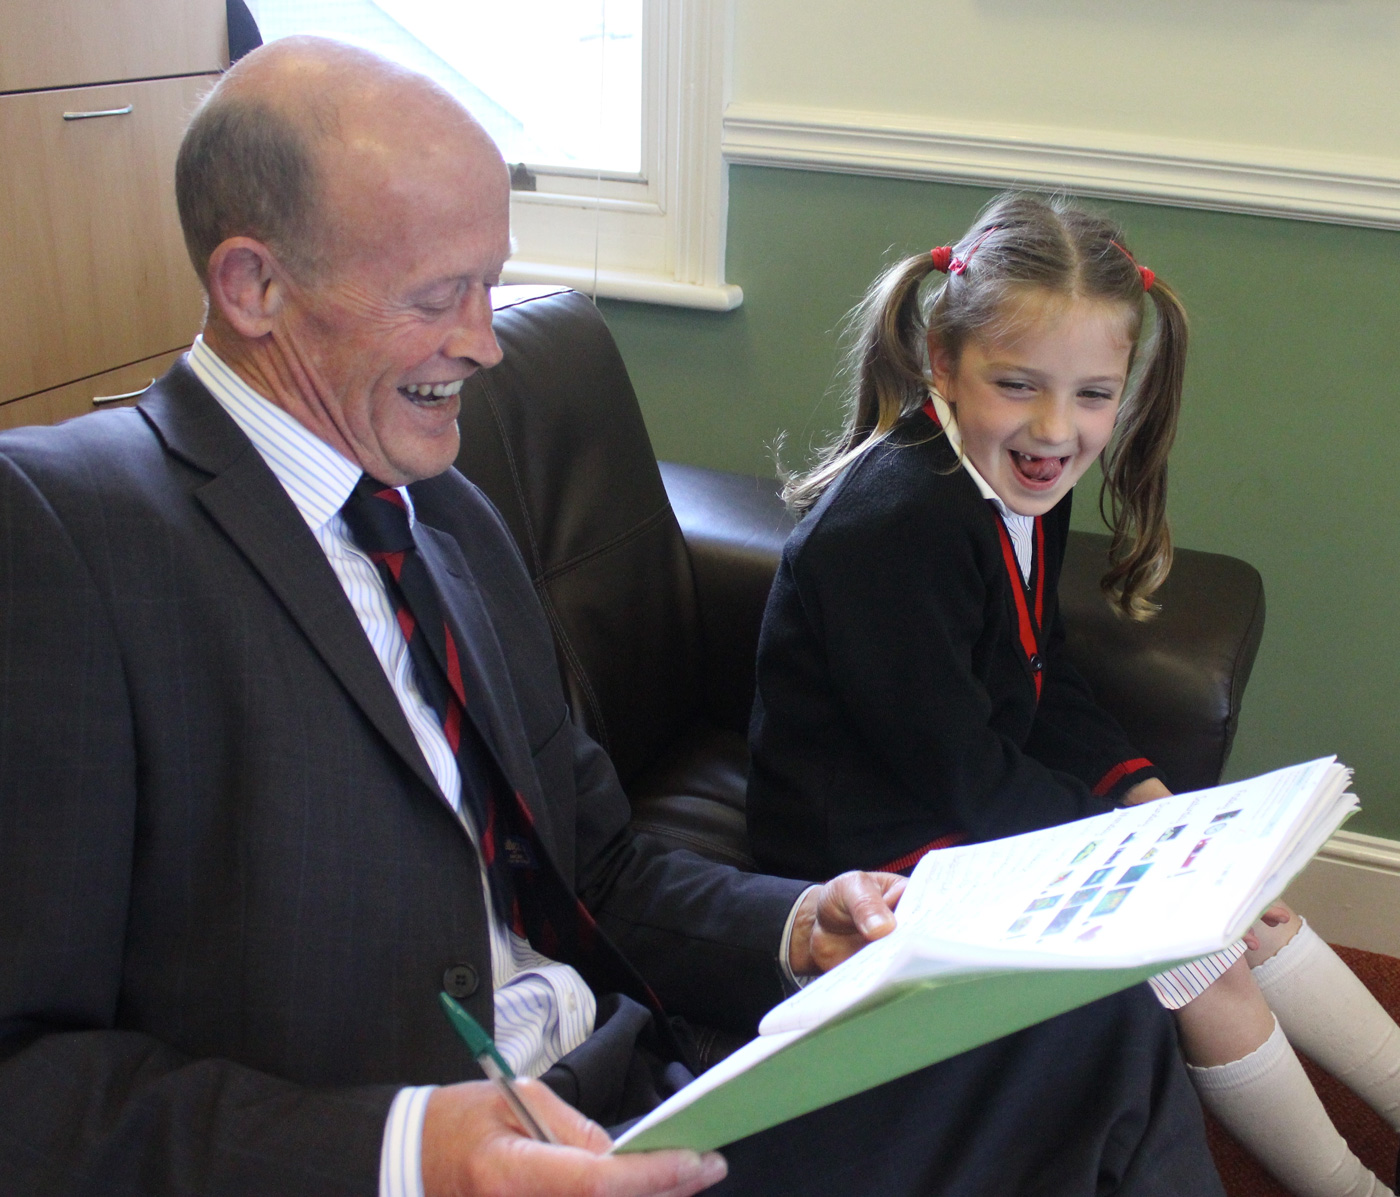 Children visit the Headmaster's Study with especially good work, recieving Headmaster's Commendations